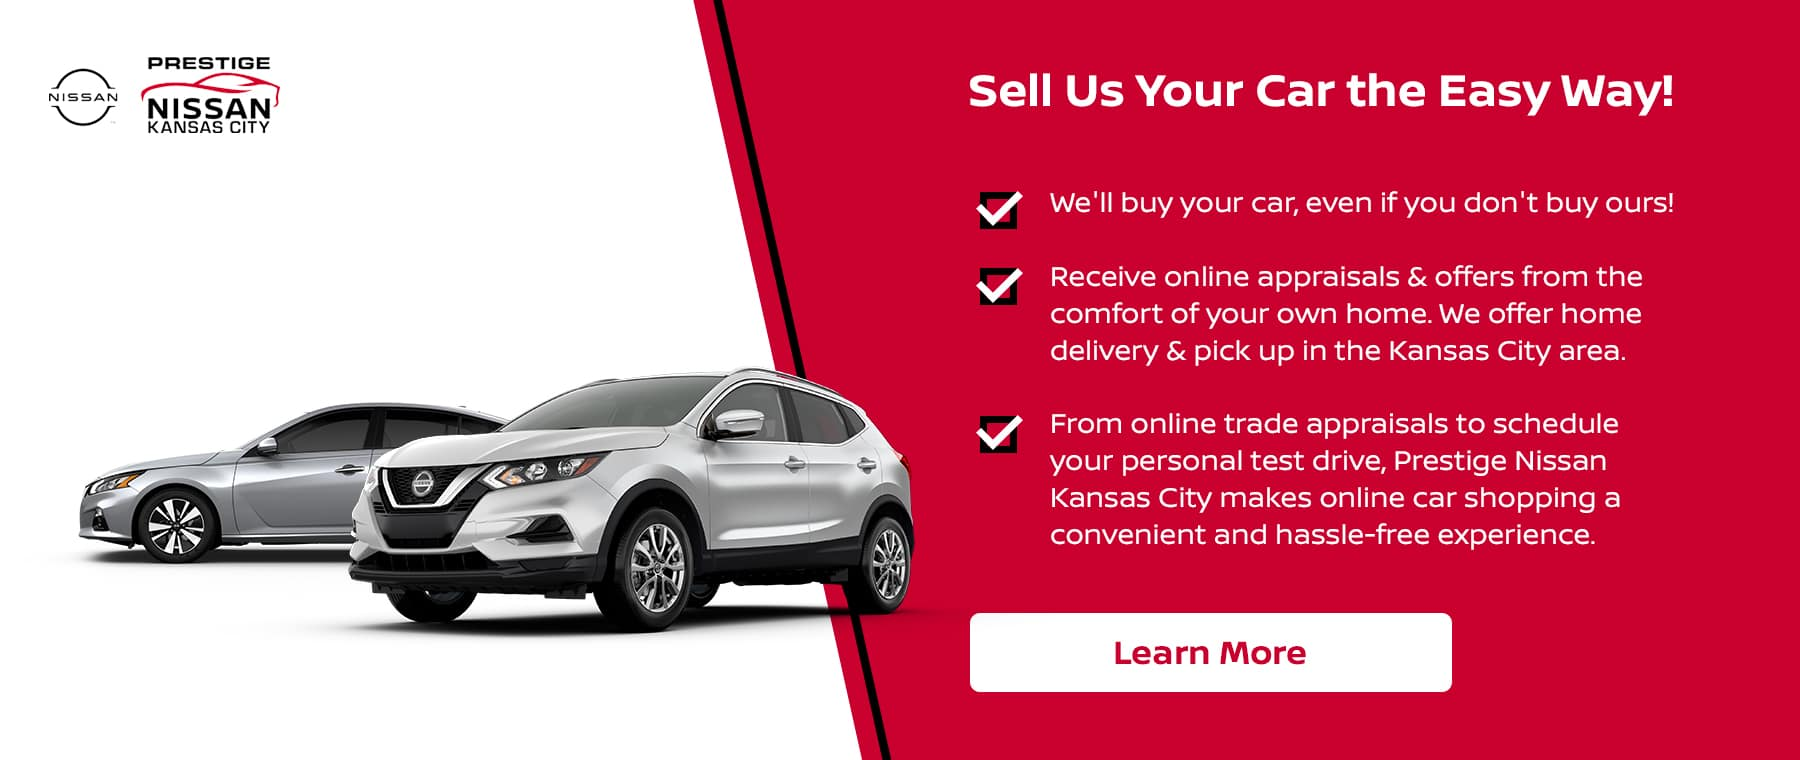 We'll buy your car, even if you don't buy ours! Receive online appraisals & offers from the comfort of your own home. We offer home delivery & pick up in the Kansas City area. From online trade appraisals to schedule your personal test drive, Prestige Nissan Kansas City makes online car shopping a convenient and hassle-free experience.